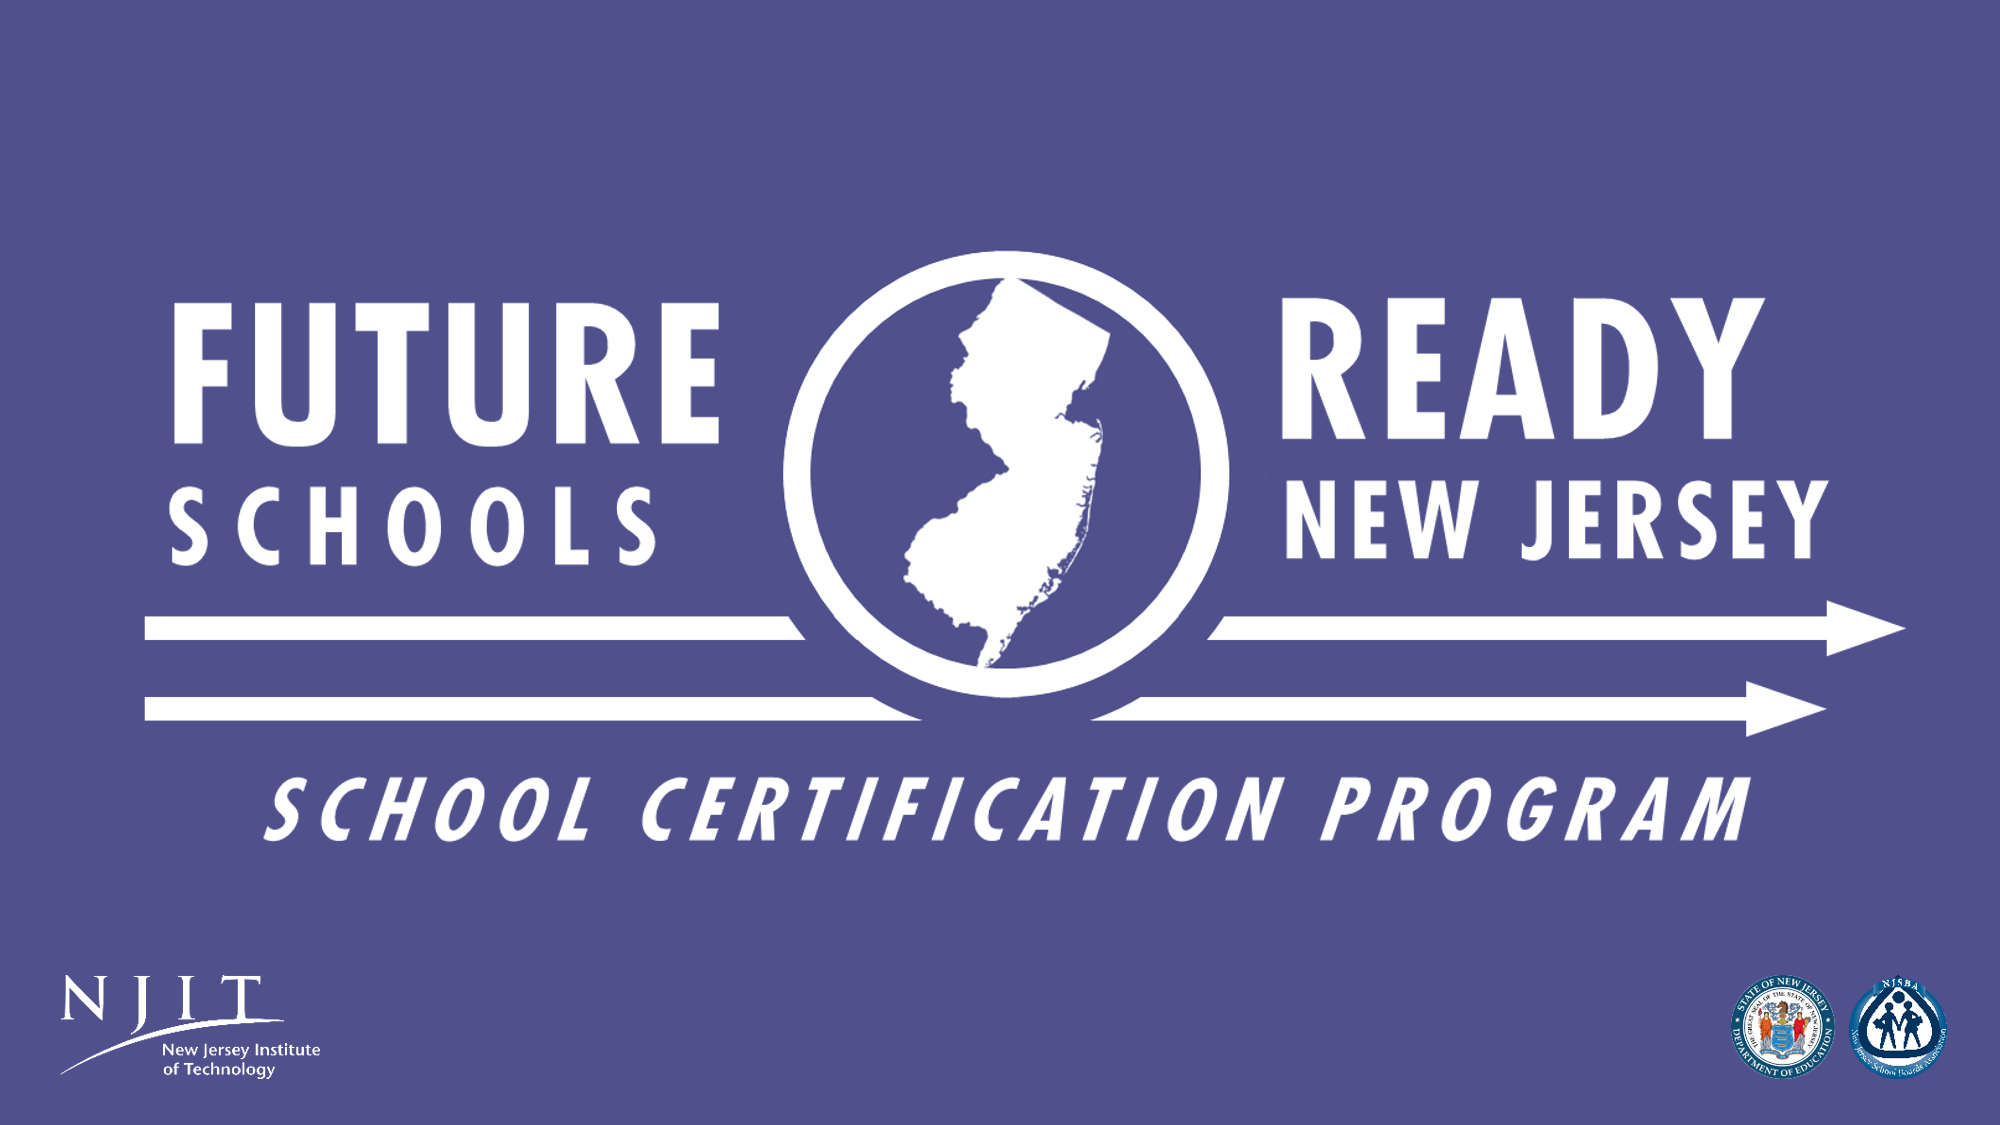 Future Ready Schools New Jersey